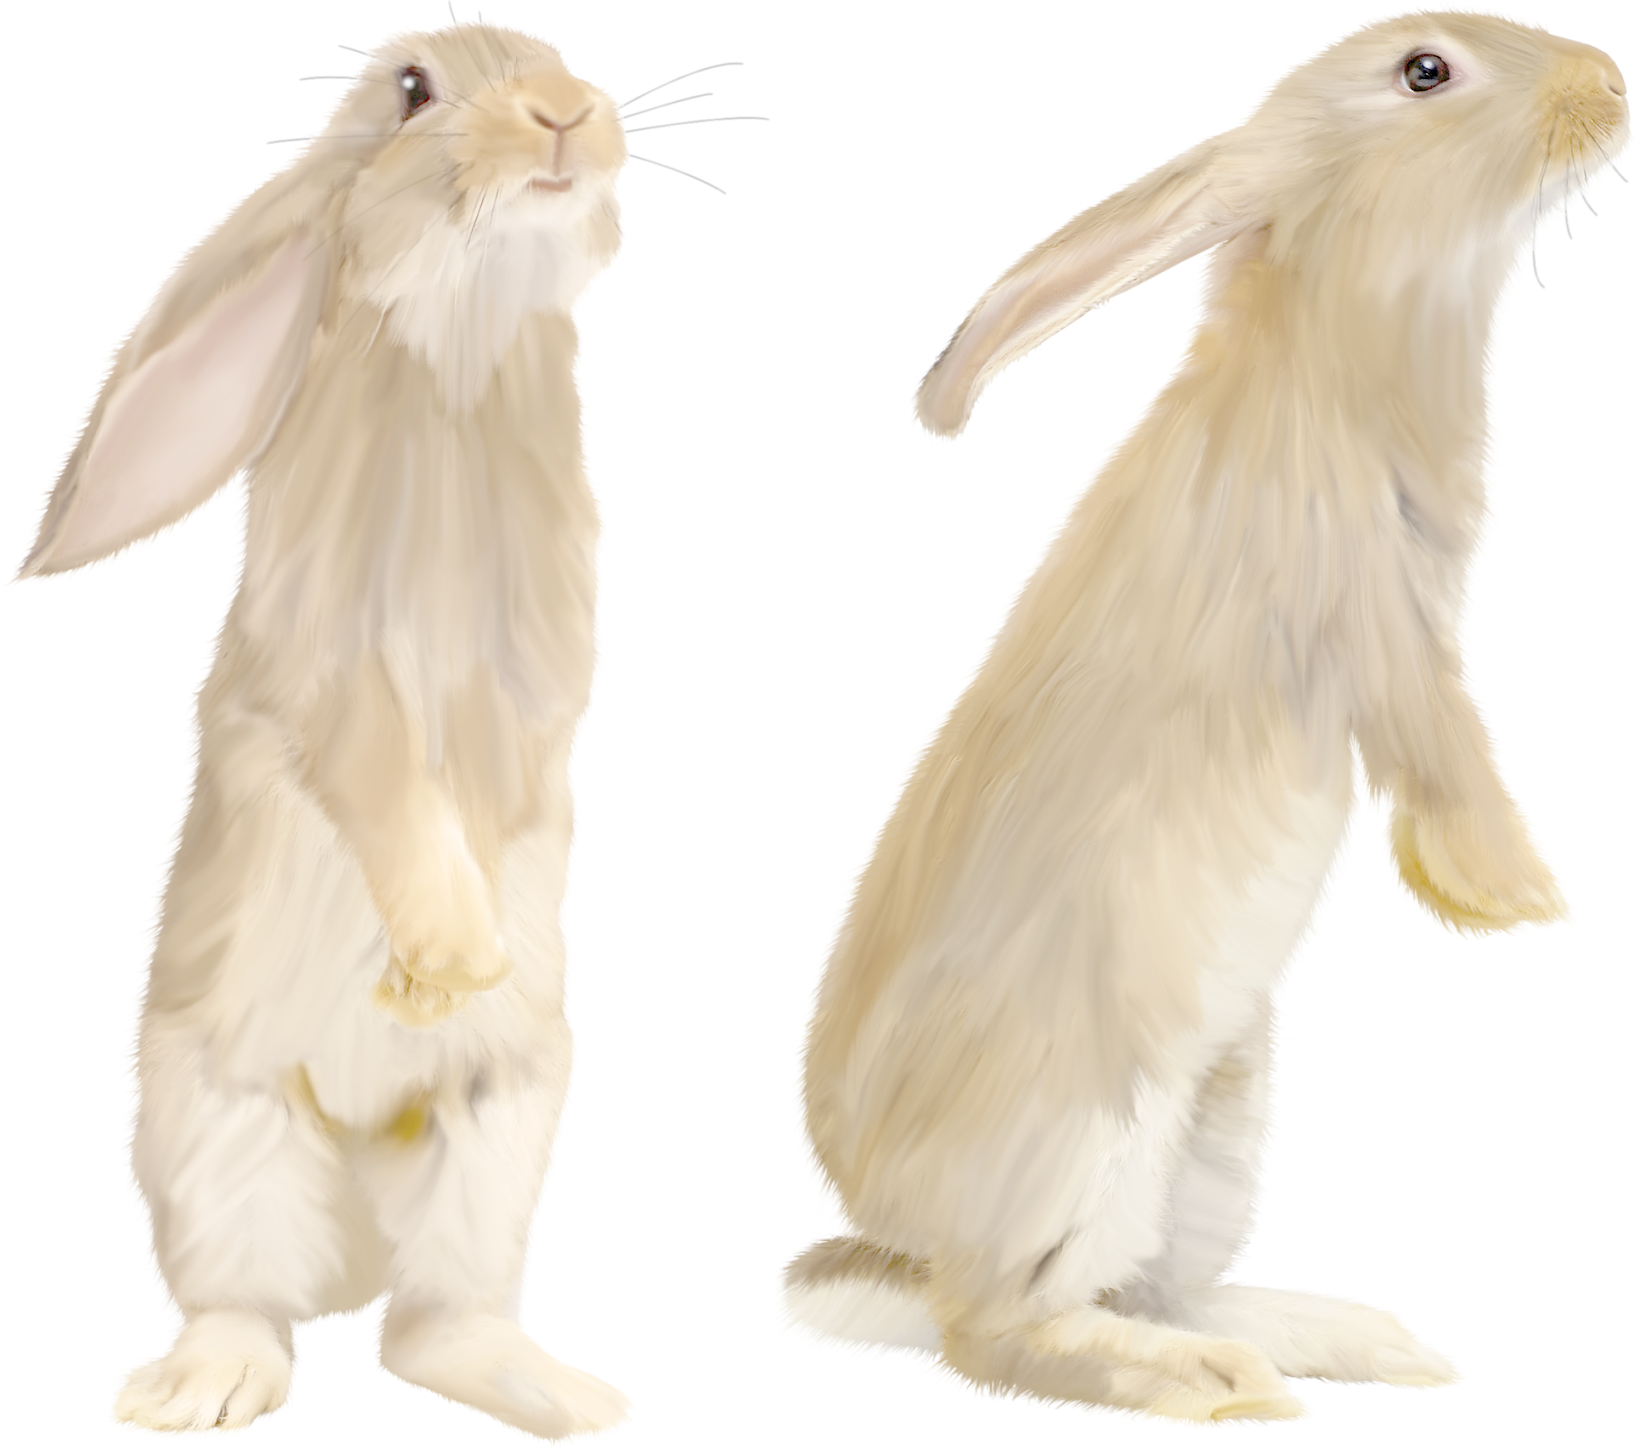 White rabbit PNG image image with transparent background